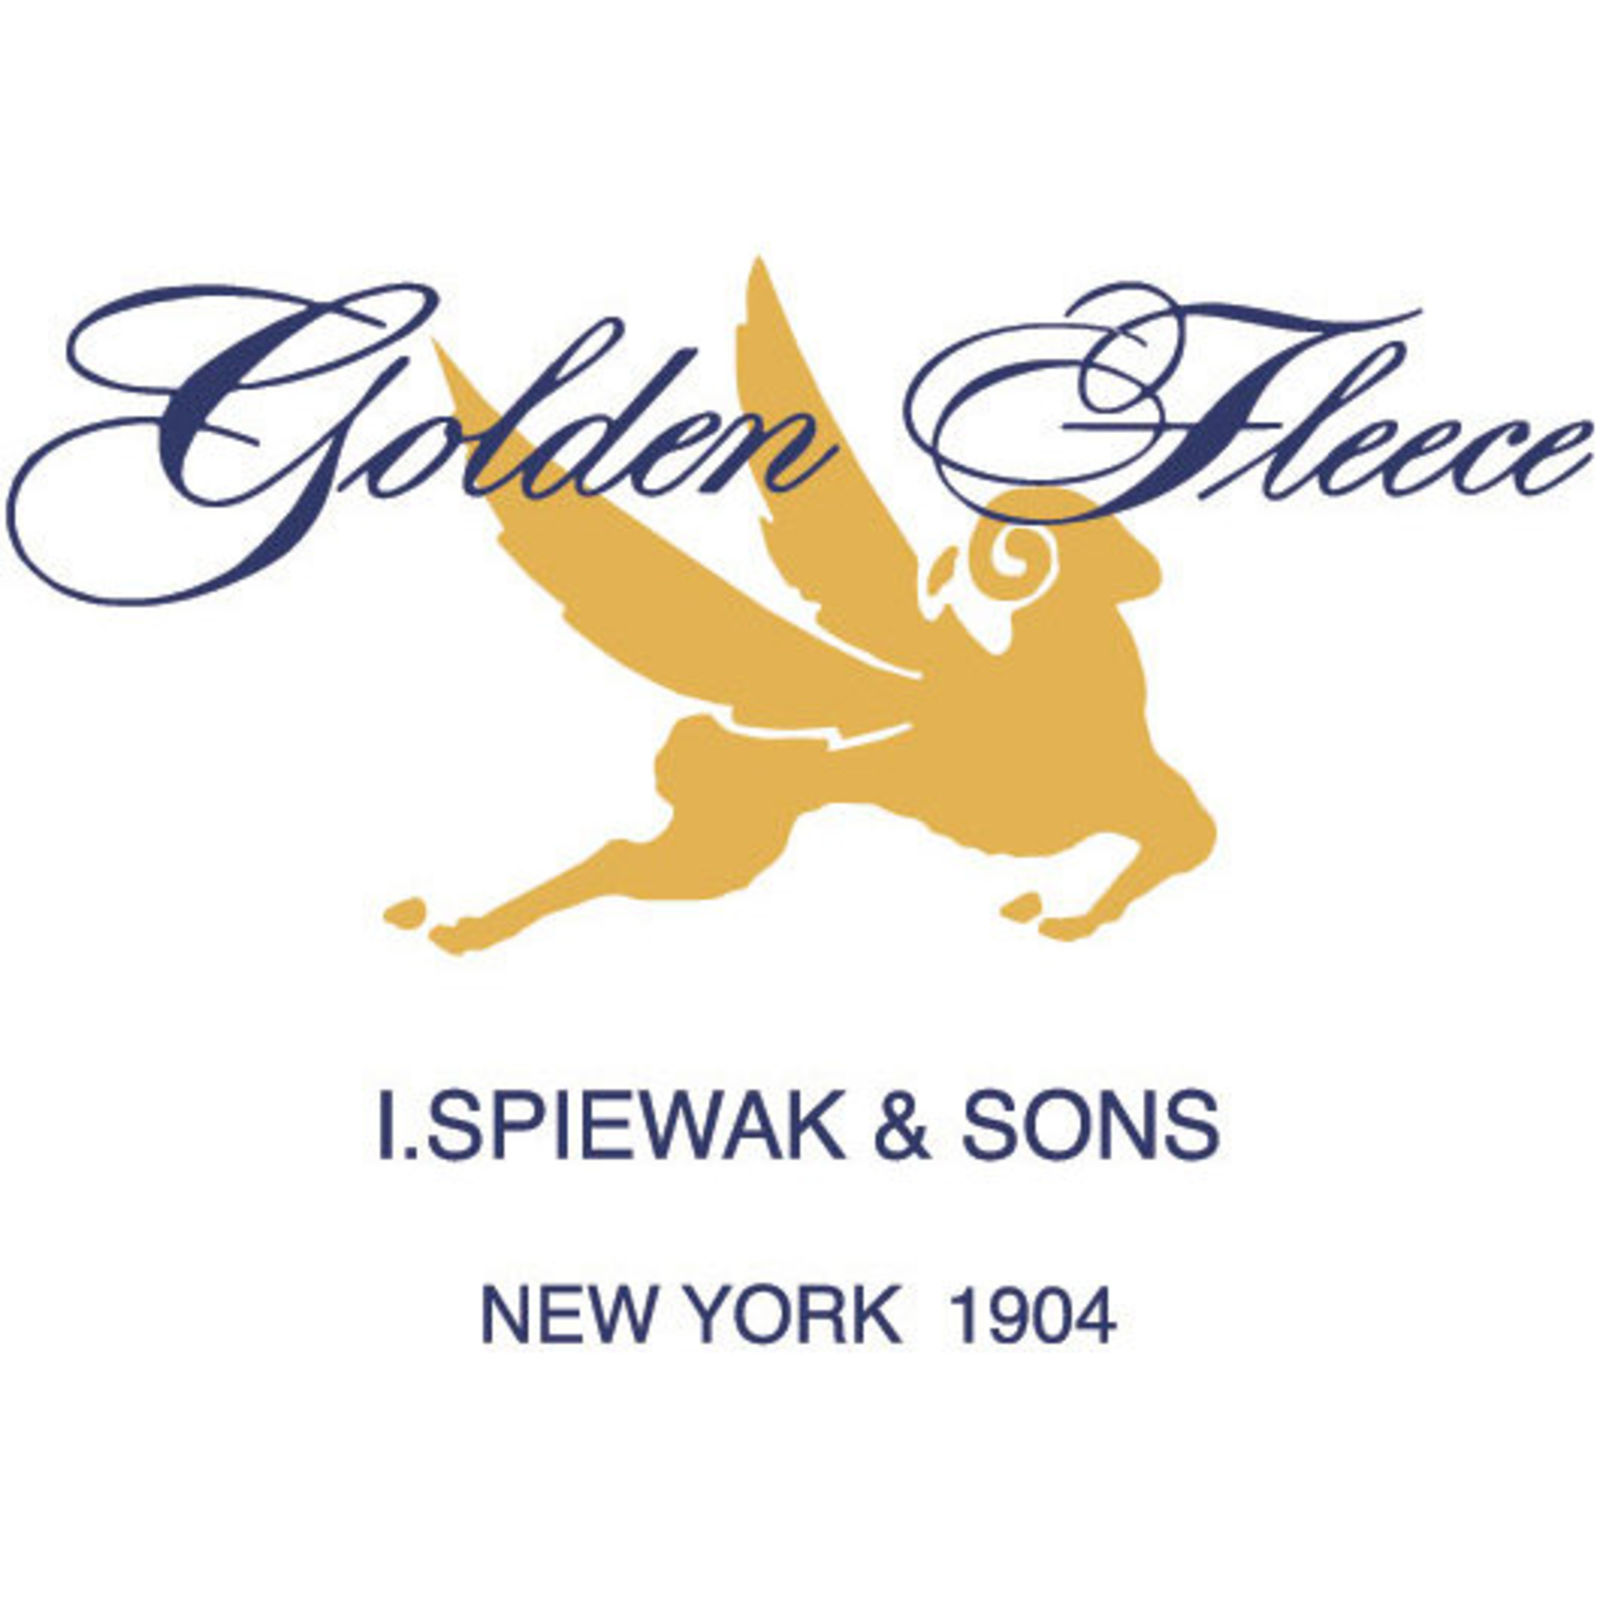 SPIEWAK | Golden Fleece